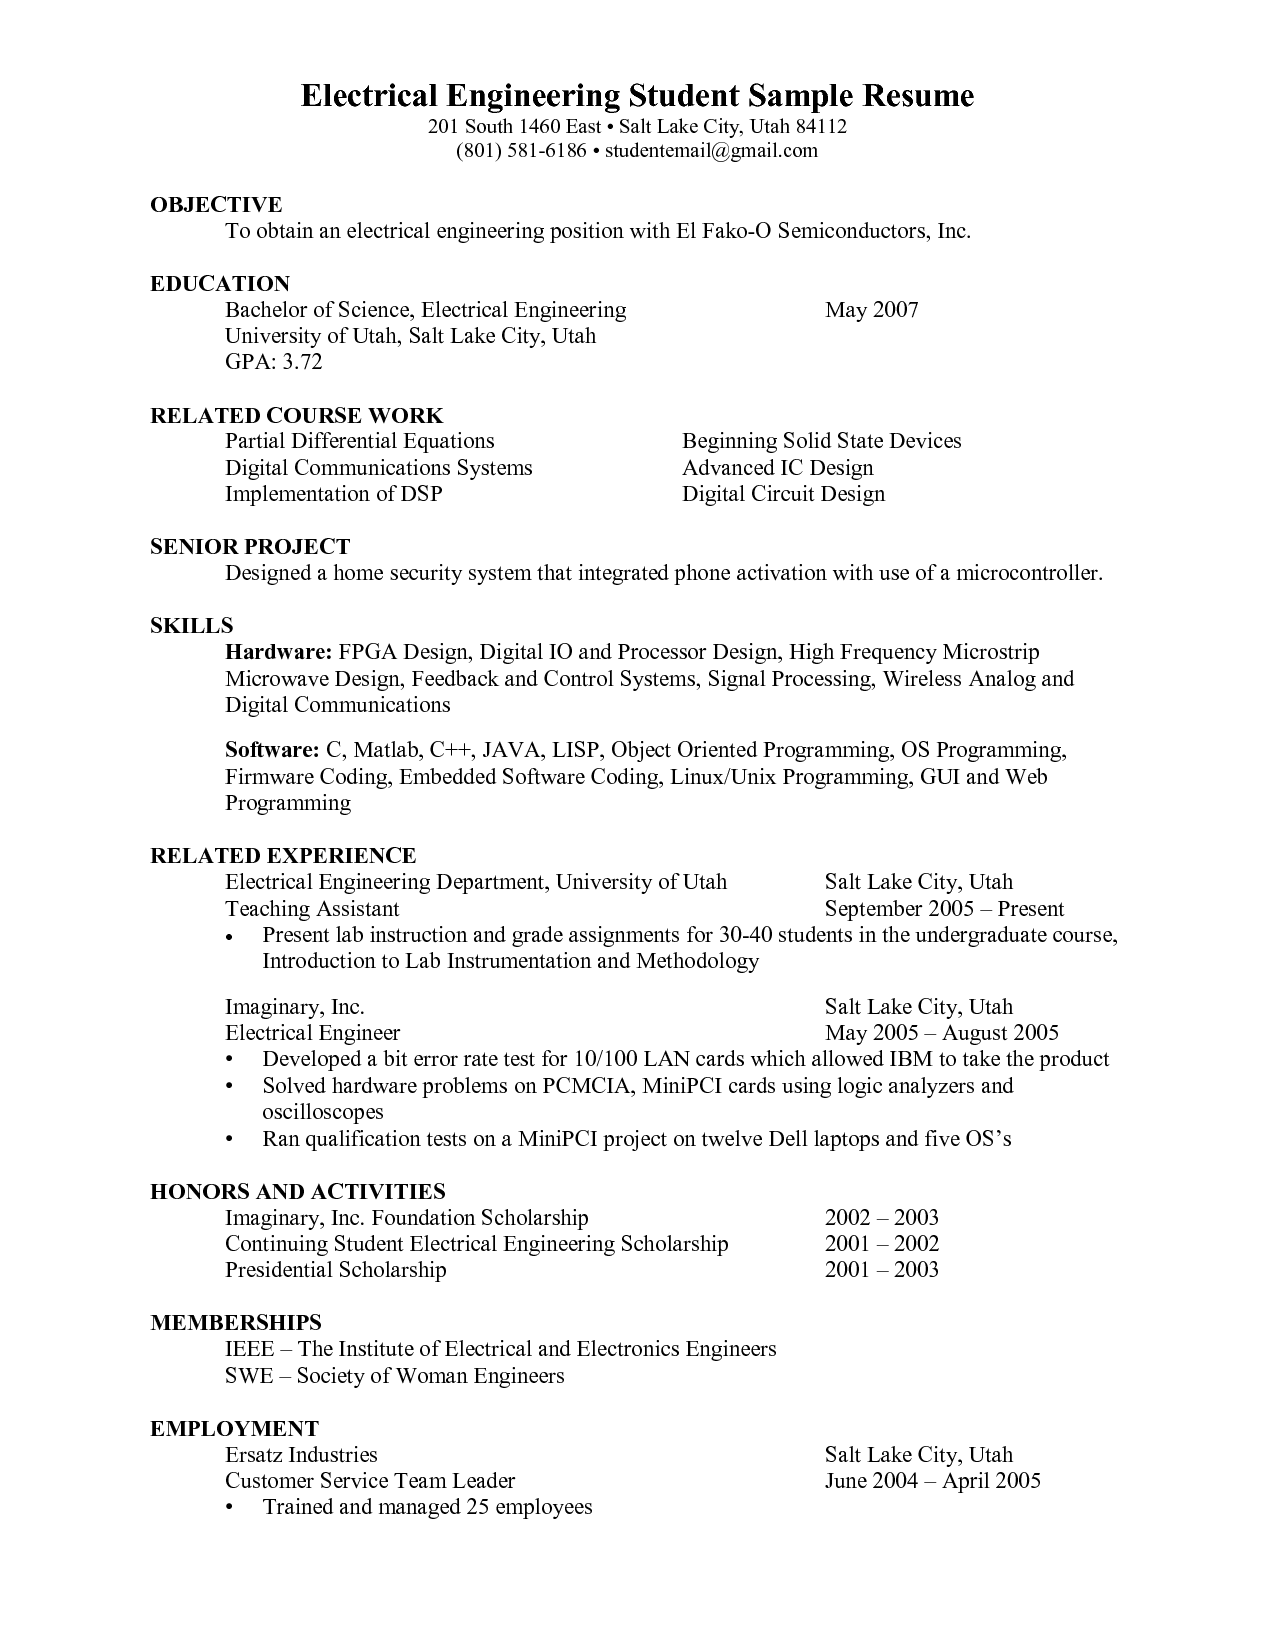 engineering student resume google search resumes resume examples for electronics engineering students